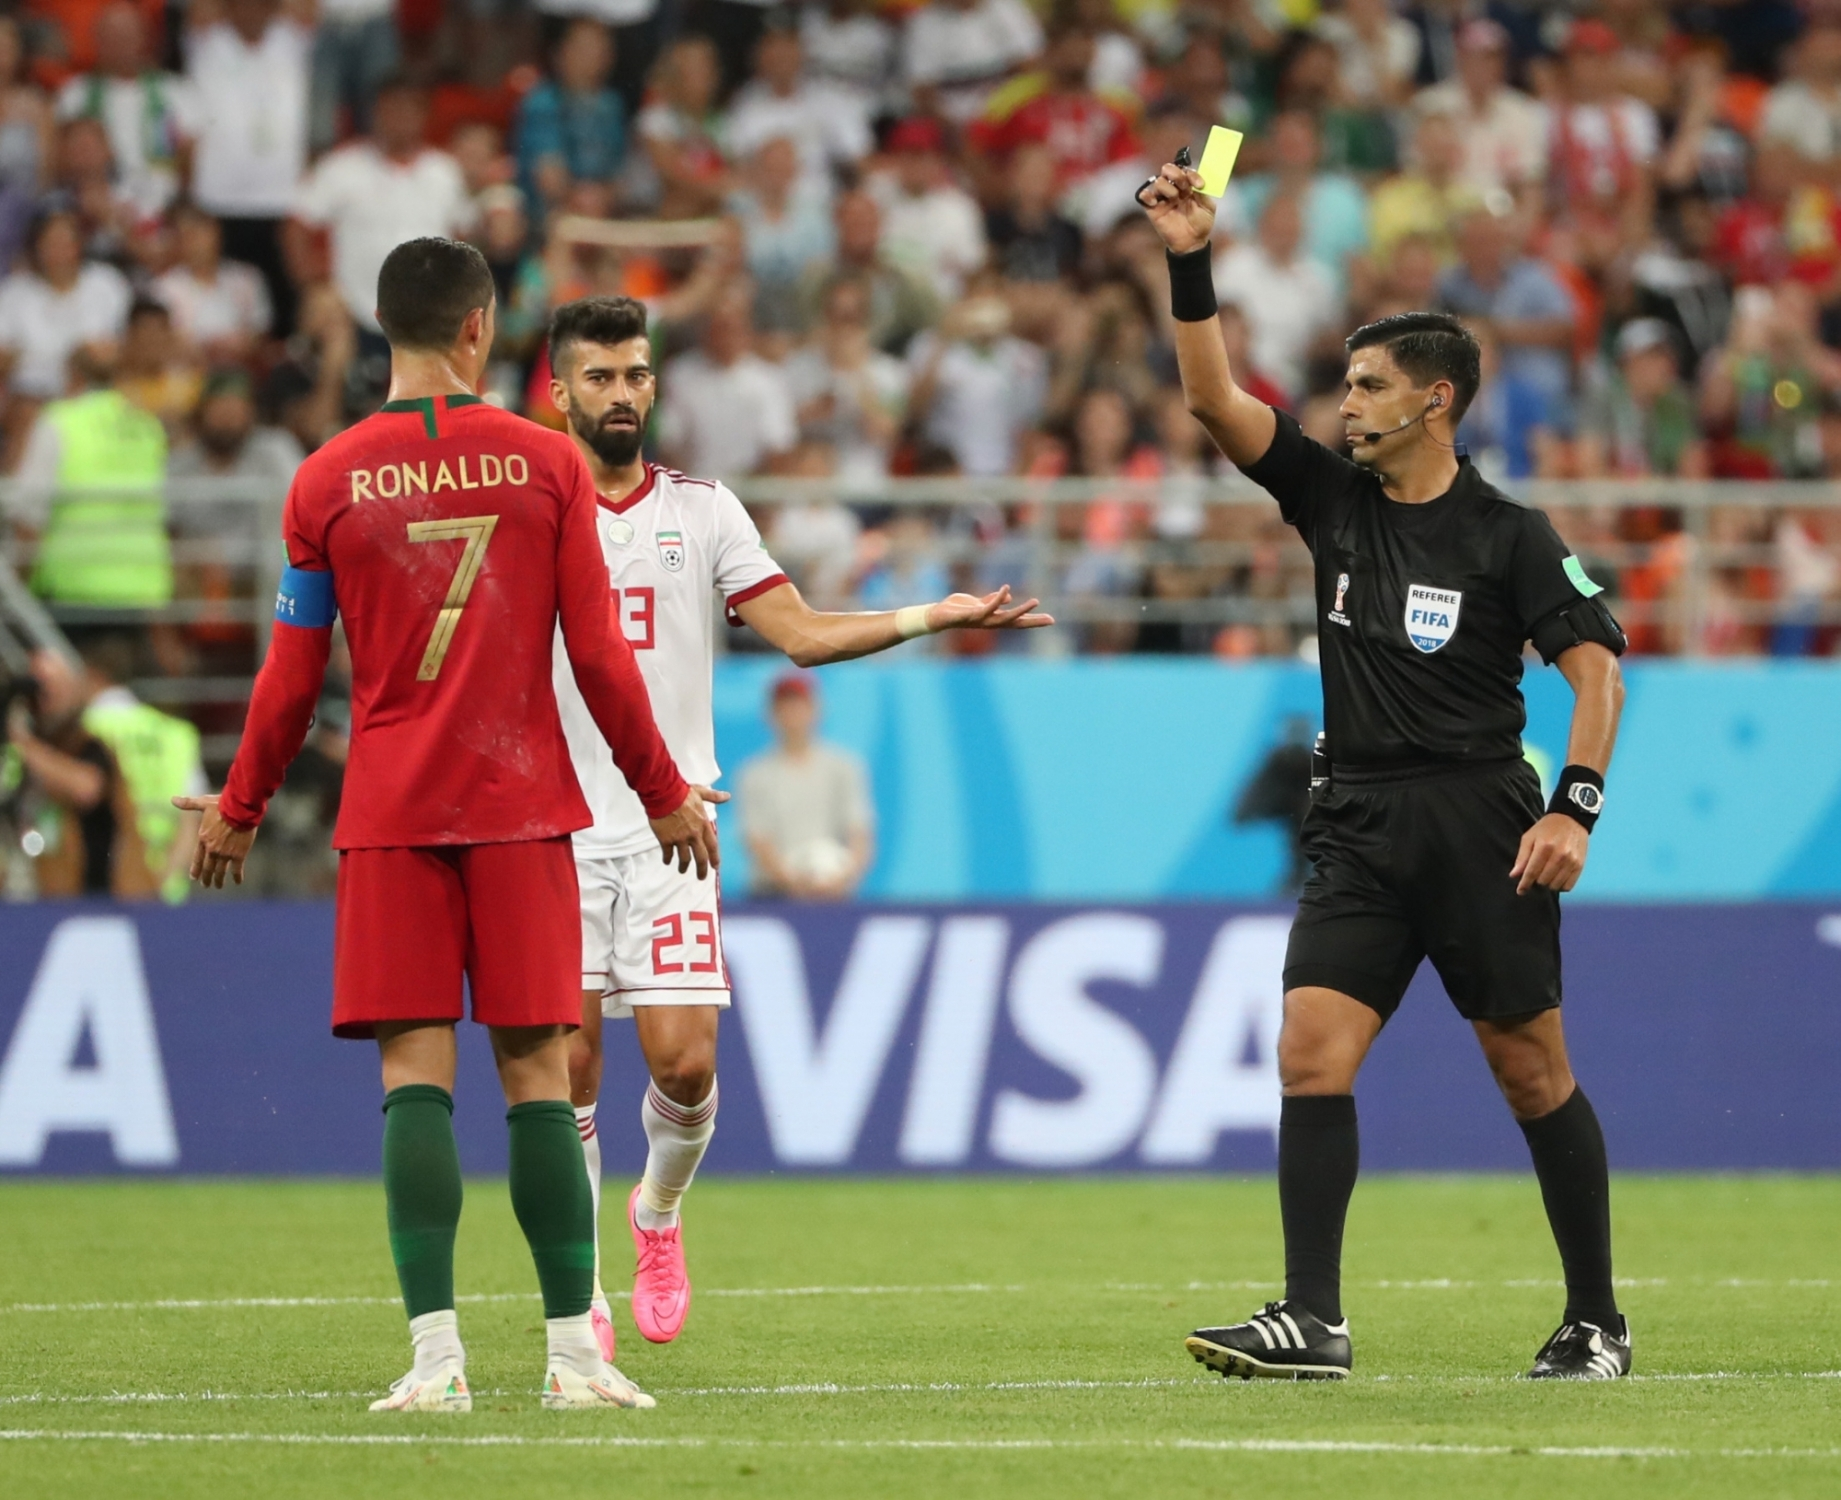 Portugal's Cristiano Ronaldo vs Iran at FIFA World Cup